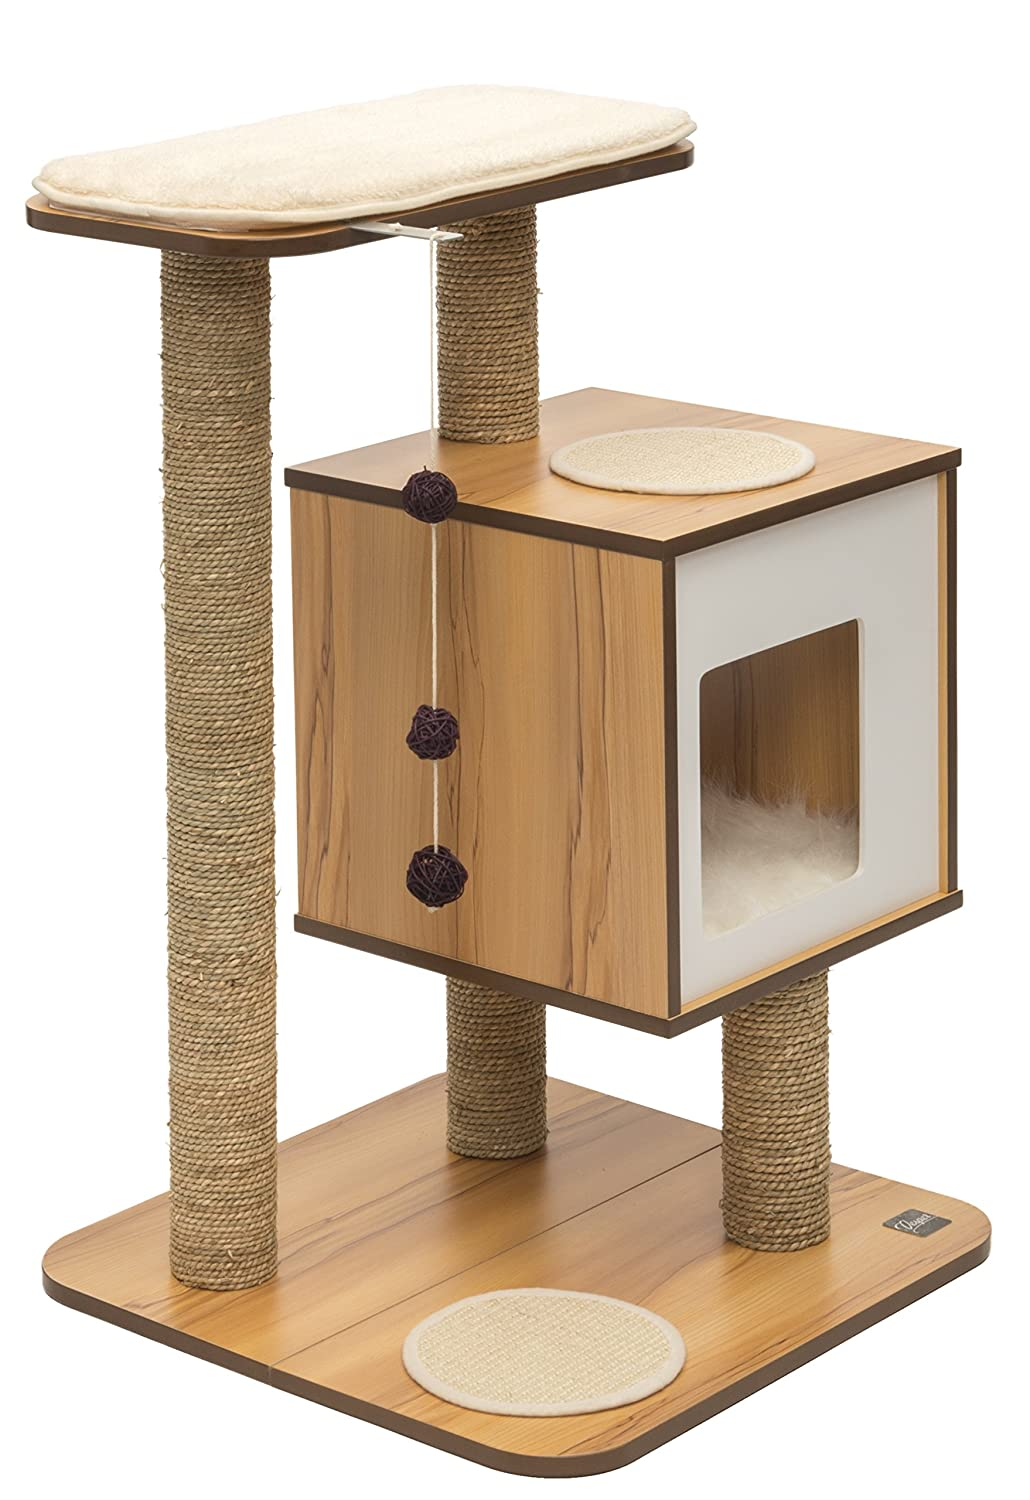 Cool cat tree plans best cat tree without carpet ideas - Sofas para gatos ...